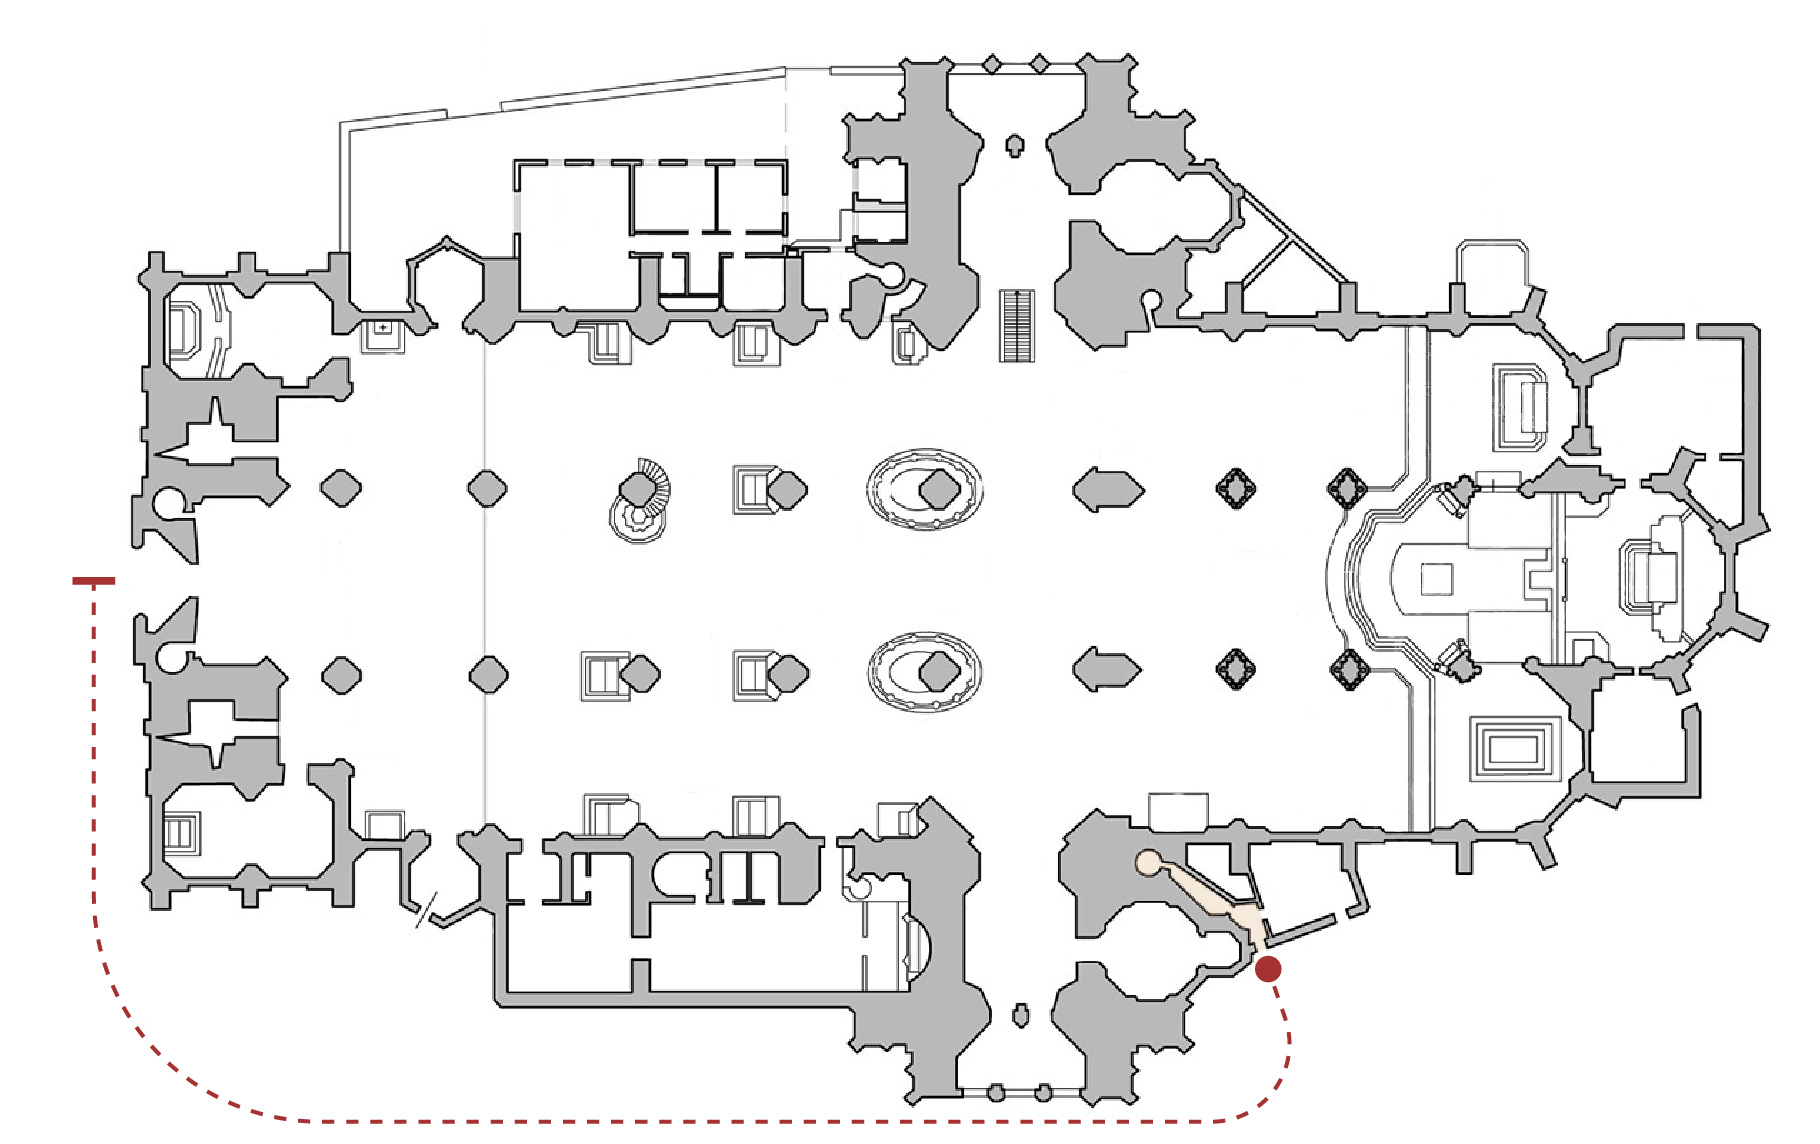 Floor plan of the South Tower